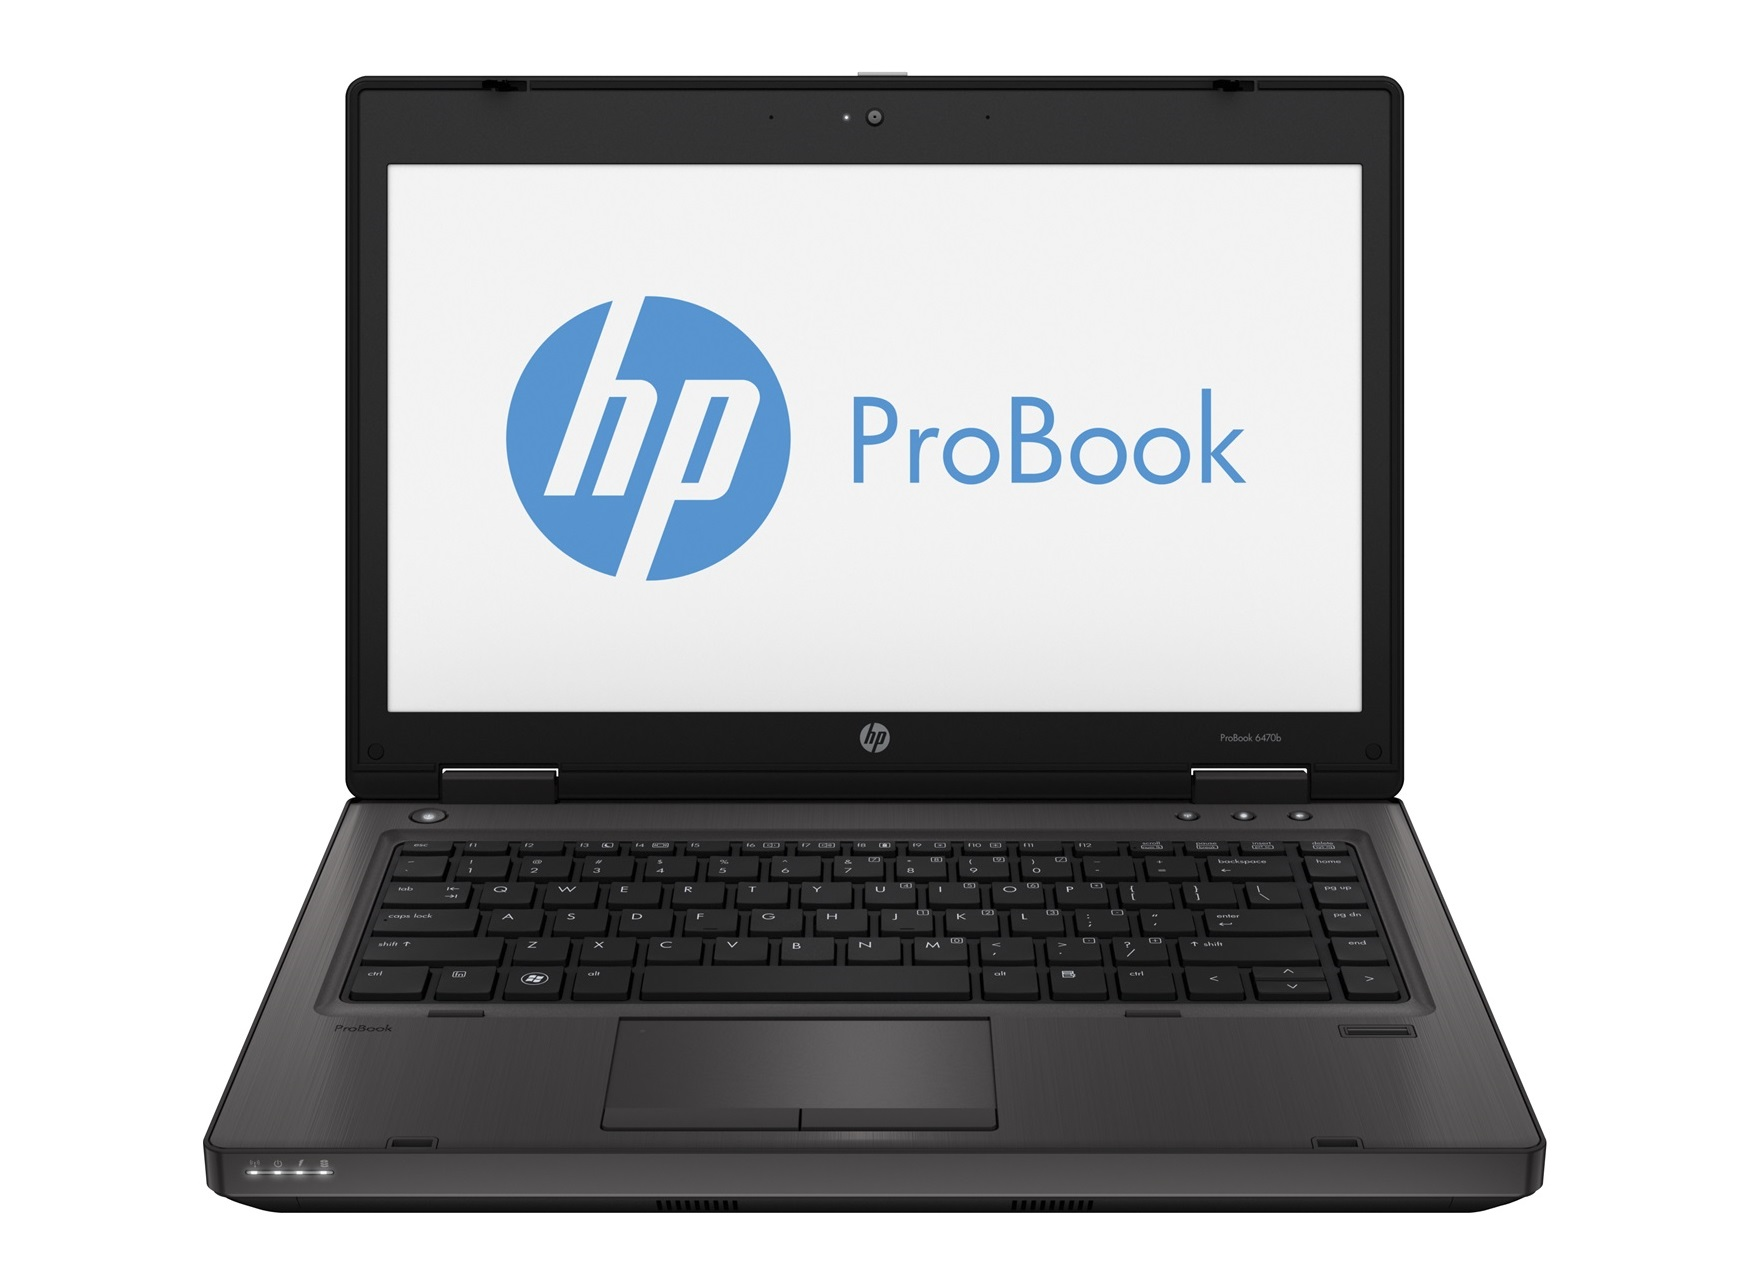 HP ProBook 6470b, Core i5 3210M, 8GB, 500GB